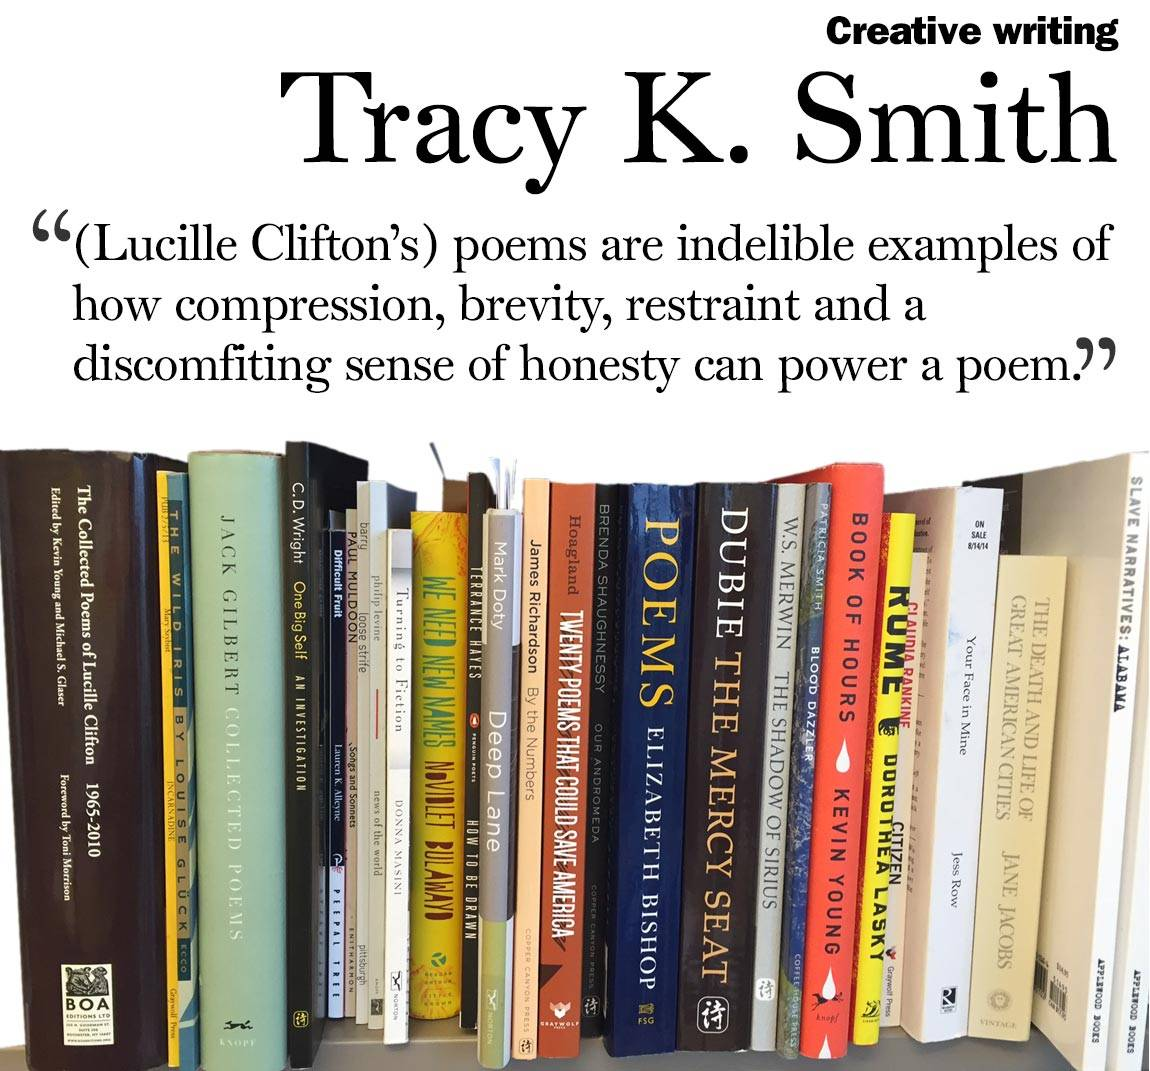 """(Lucille Clifton's) poems are indelible examples of how compression, brevity, restraint and a discomfiting sense of honesty can power a poem."" Tracy K. Smith, creative writing"